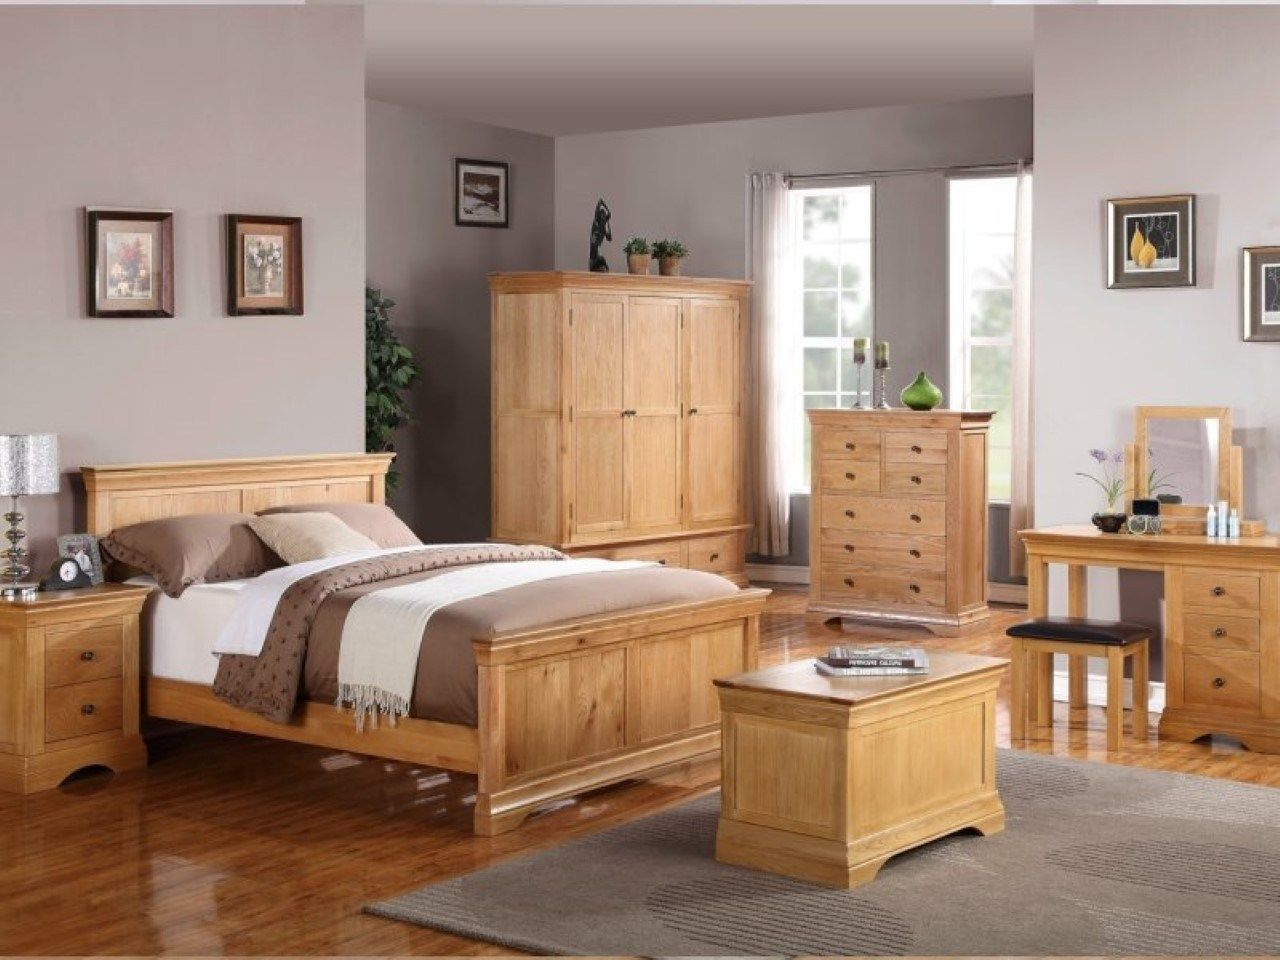 30 Best Photo Of Light Bedroom Furniture Oak Bedroom Furniture